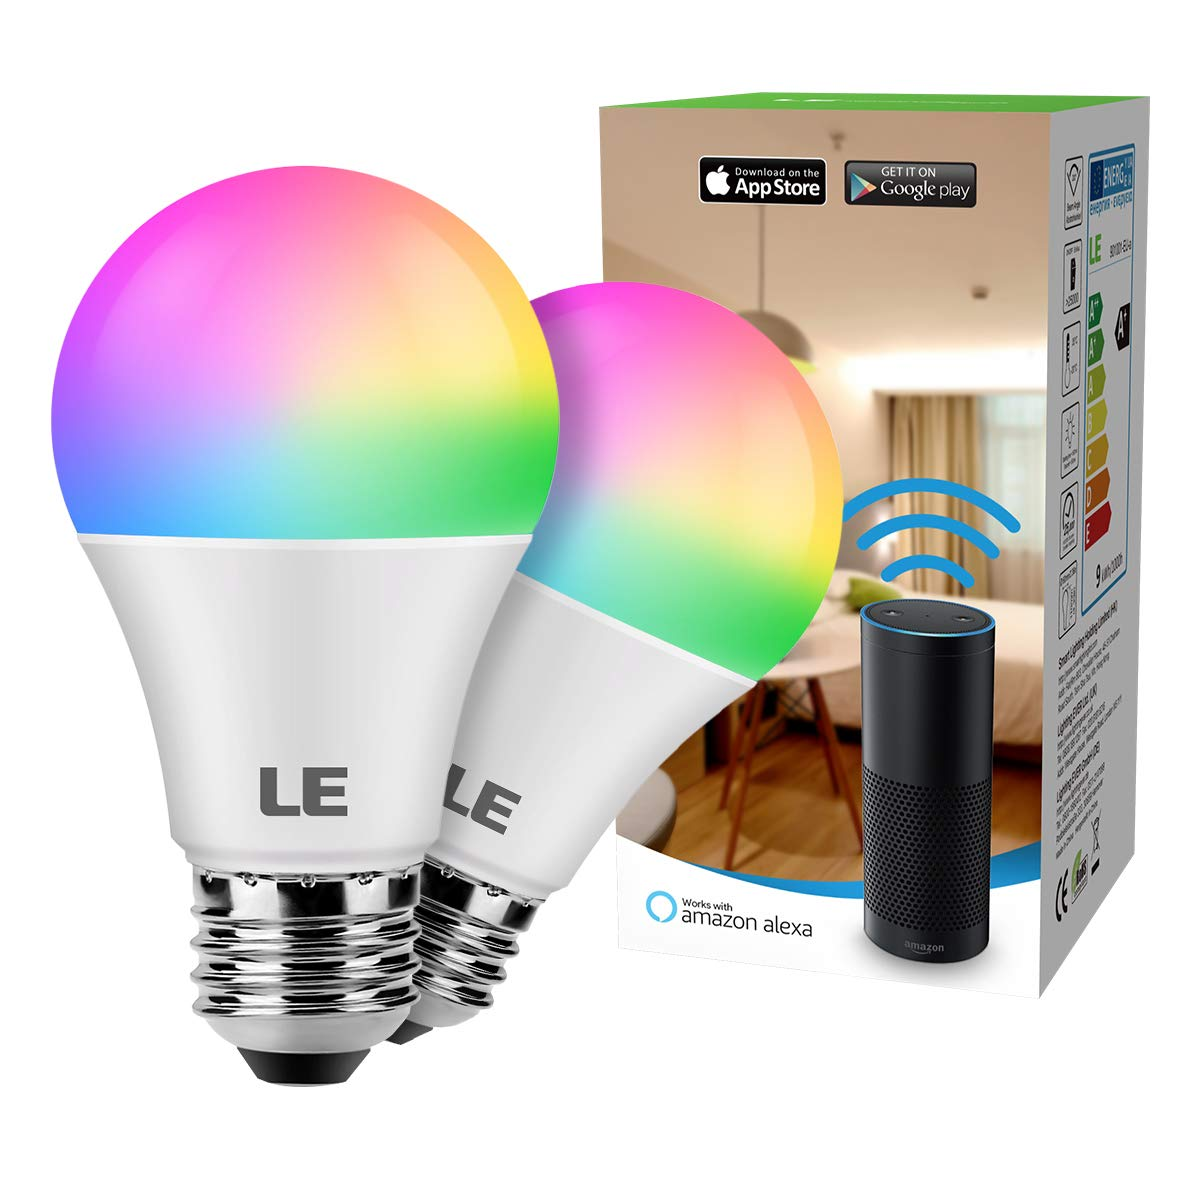 kompatibel mit Alexa LE WiFi Smart Lampe Kein Gateway erforderlich E27 RGB mit einstellbarer Helligkeit 2700-6500K ,Google Home und IFTTT Fernbedienung Echo, Echo Dot 9W Dimmbar Smart LED Birne